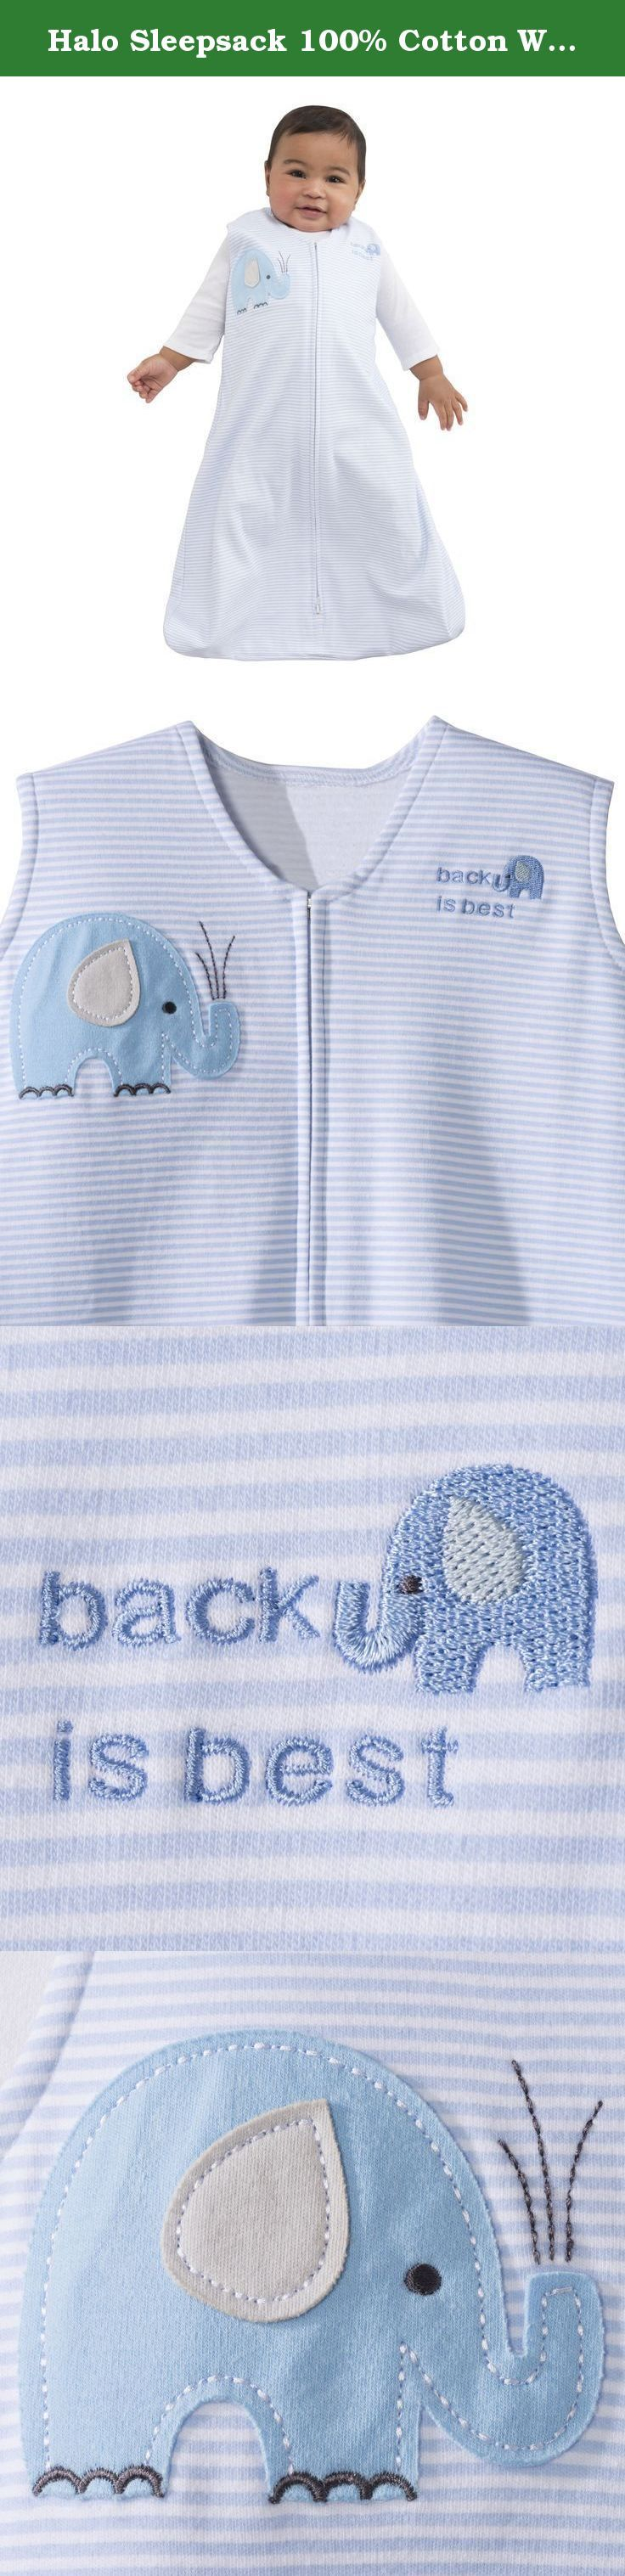 Halo Sleepsack 100% Cotton Wearable Blanket, Blue Stripe, X Large. HALO SleepSack wearable blanket: The Safer Way to Sleep The HALO SleepSack wearable blanket replaces loose blankets in the crib that can cover your baby's face and interfere with breathing. In addition to helping your baby sleep safer, the HALO SleepSack wearable blanket helps your baby sleep better, too. It is a warm cuddly blanket they cannot kick off; ensuring baby sleeps soundly throughout the night. Used in hospital...